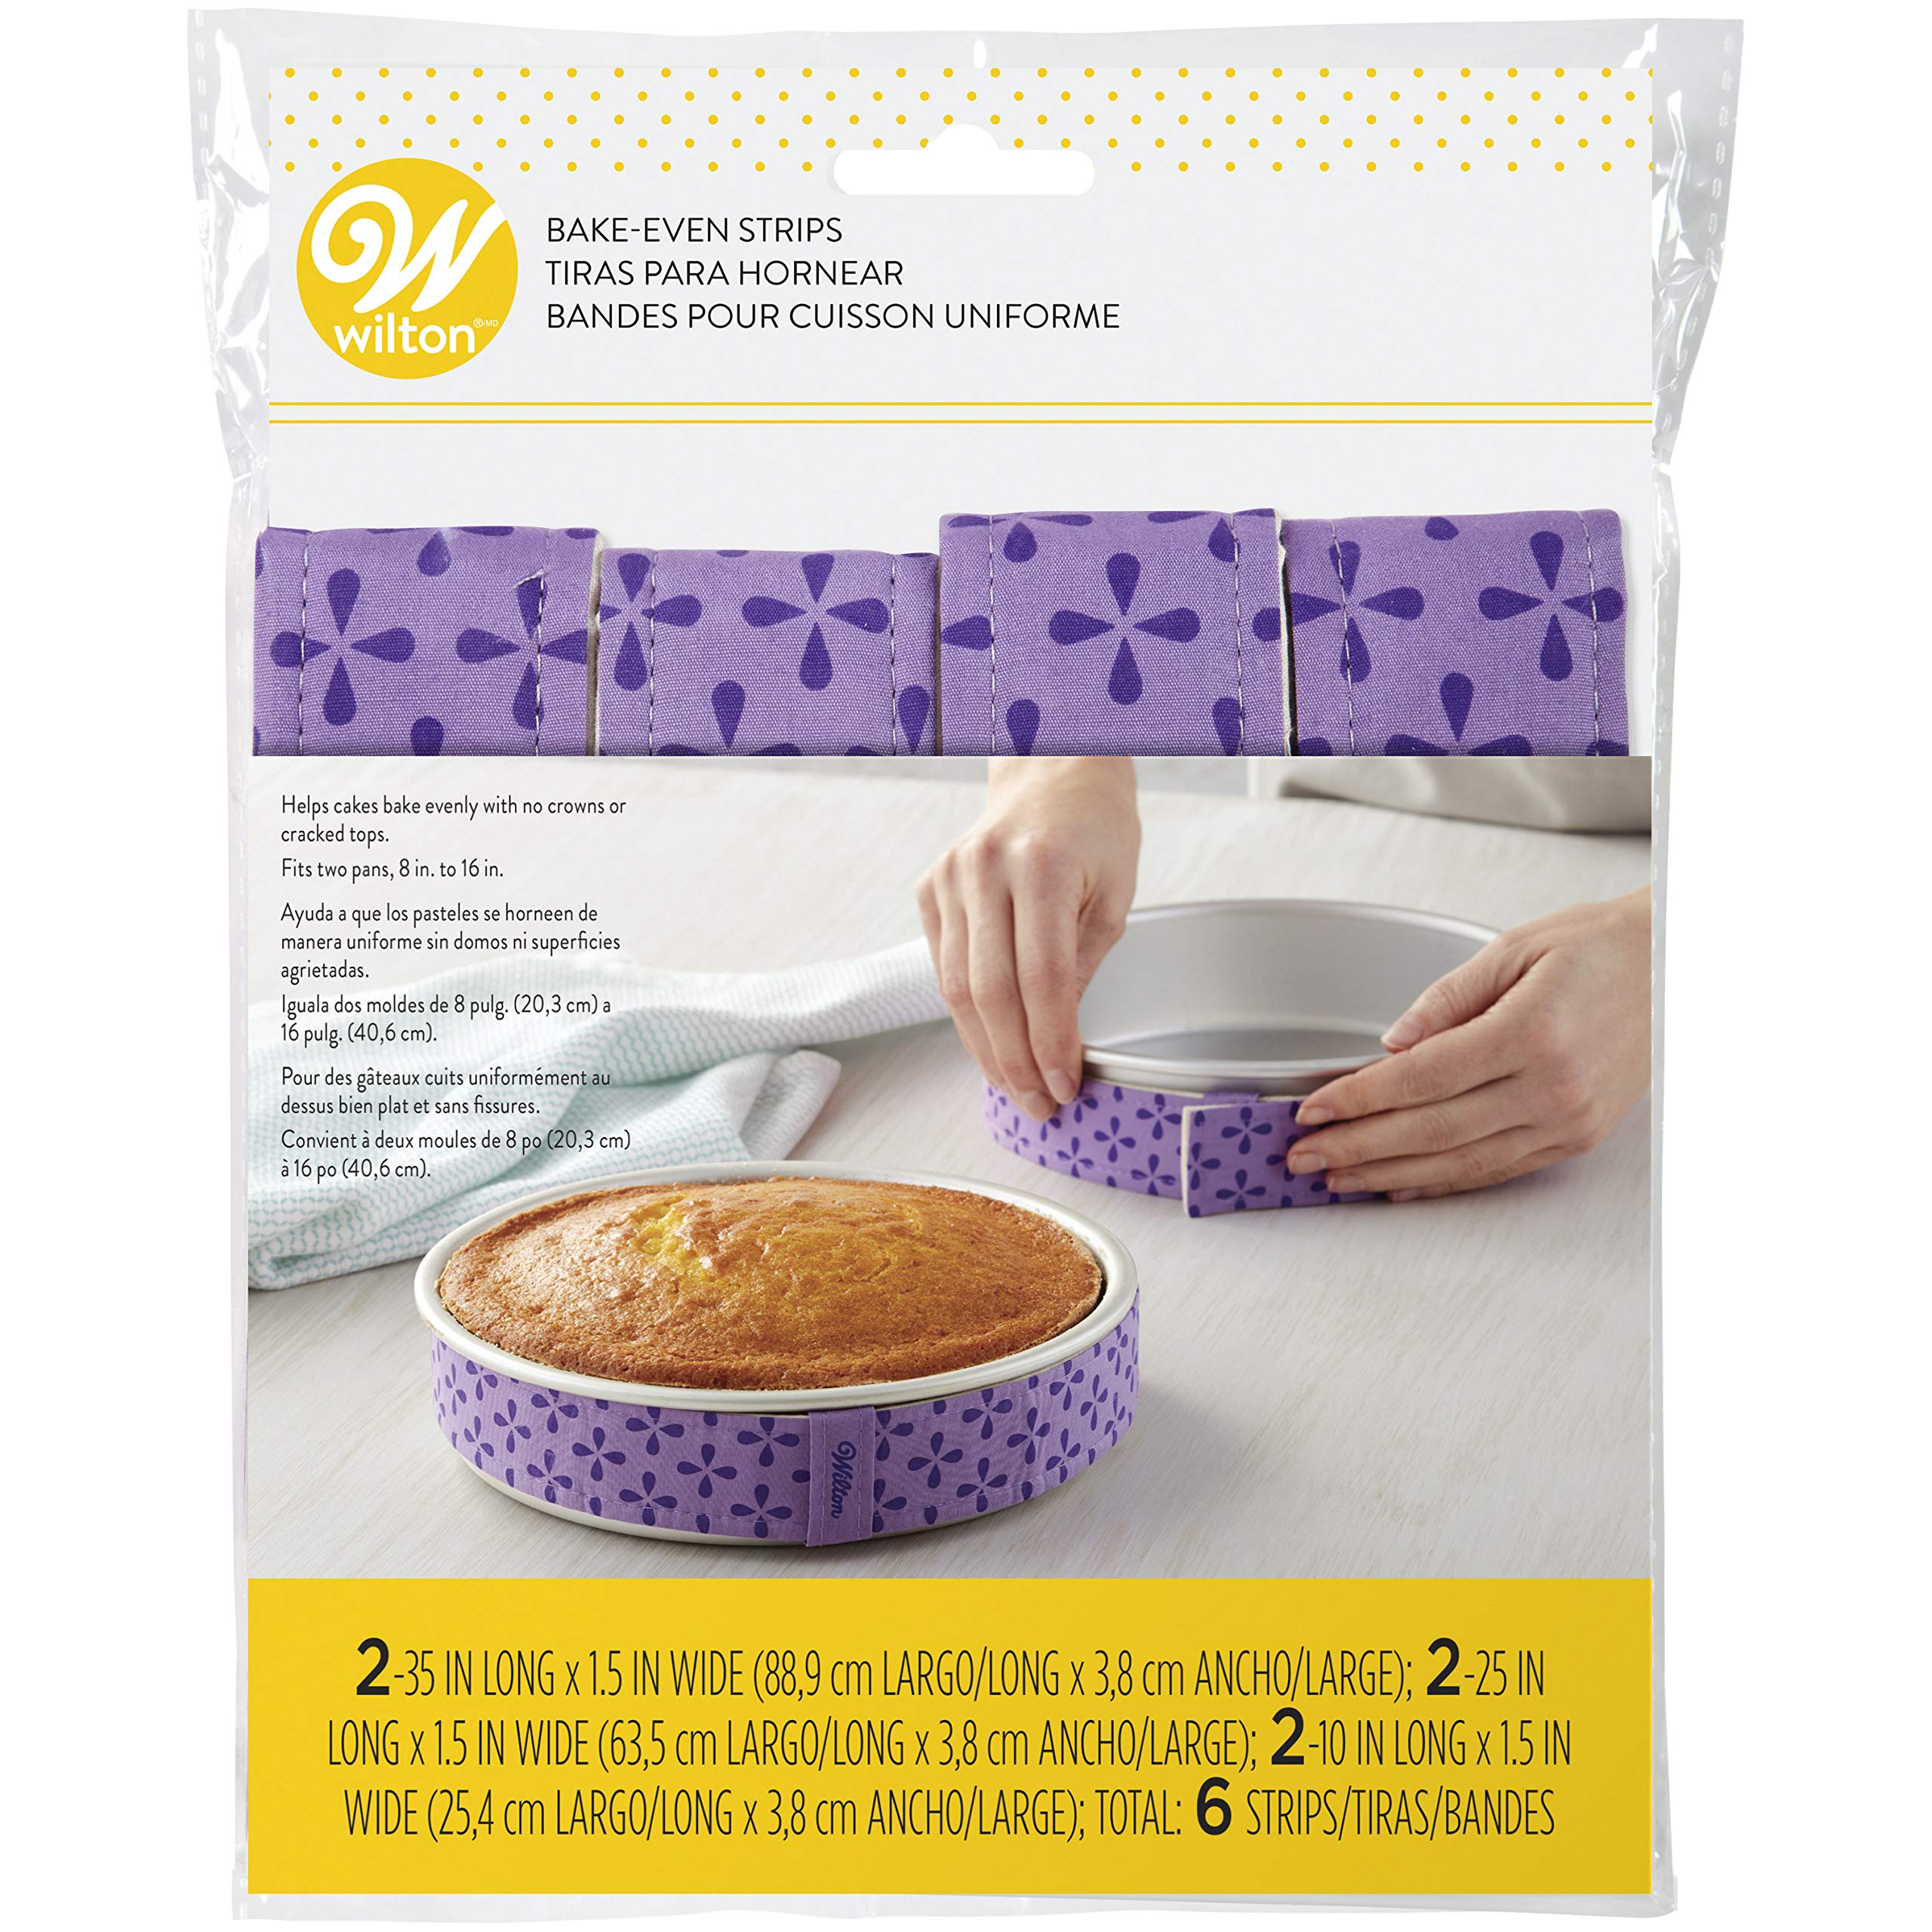 Wilton Bake-Even Strips, Takes Baking to the Next Level, Keeps Cakes More Level and Prevents Crowning with Cleaner Edges for a Professional Look and Easier Decorating, 6-Piece by Wilton